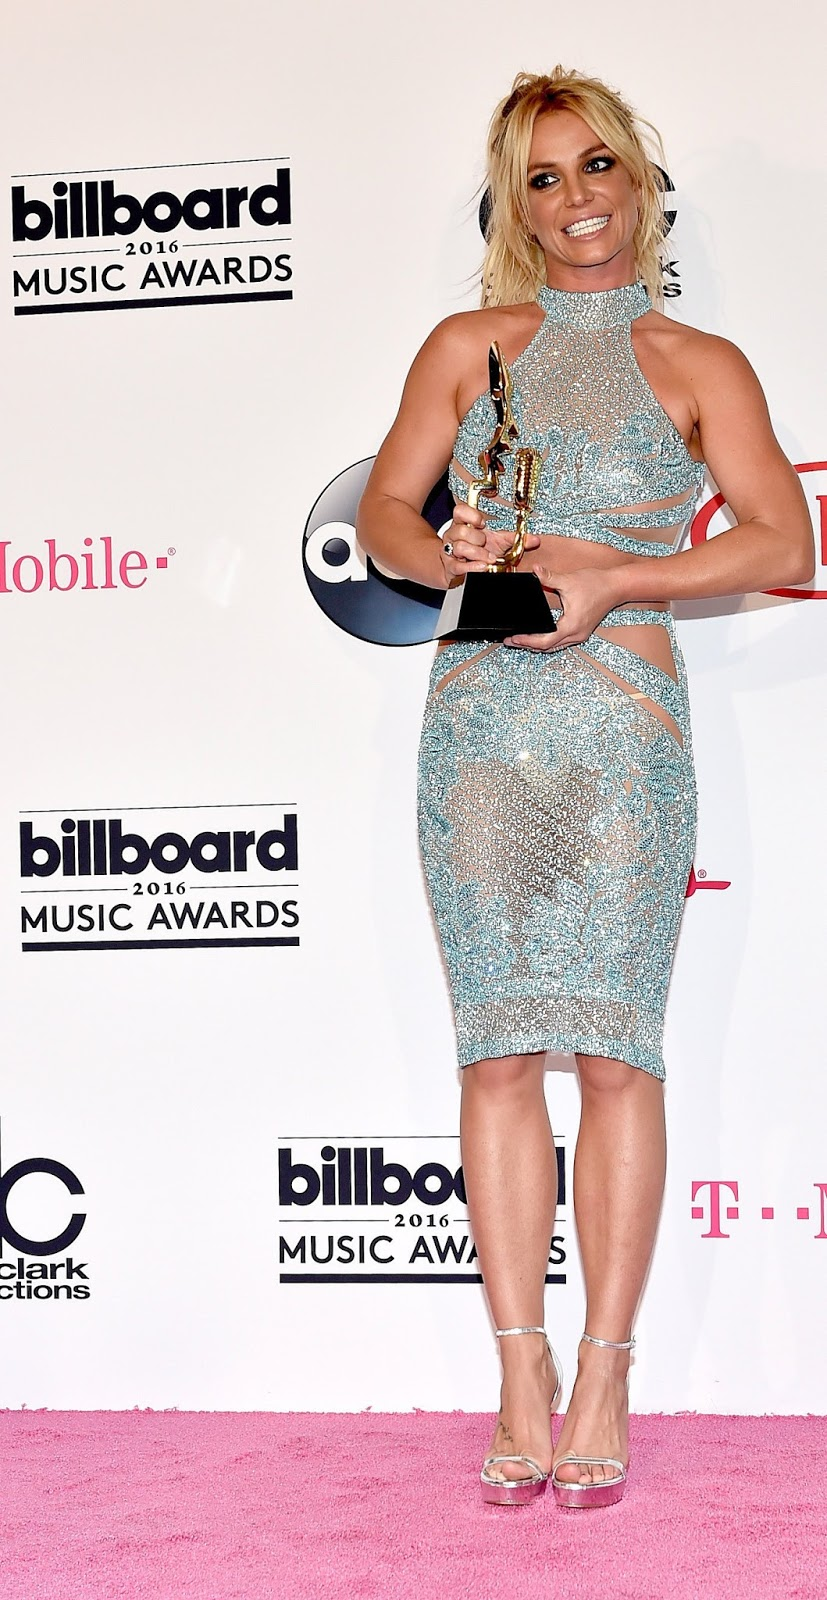 She did put on a sparkly shirt/skirt combo to accept her Millennium Award